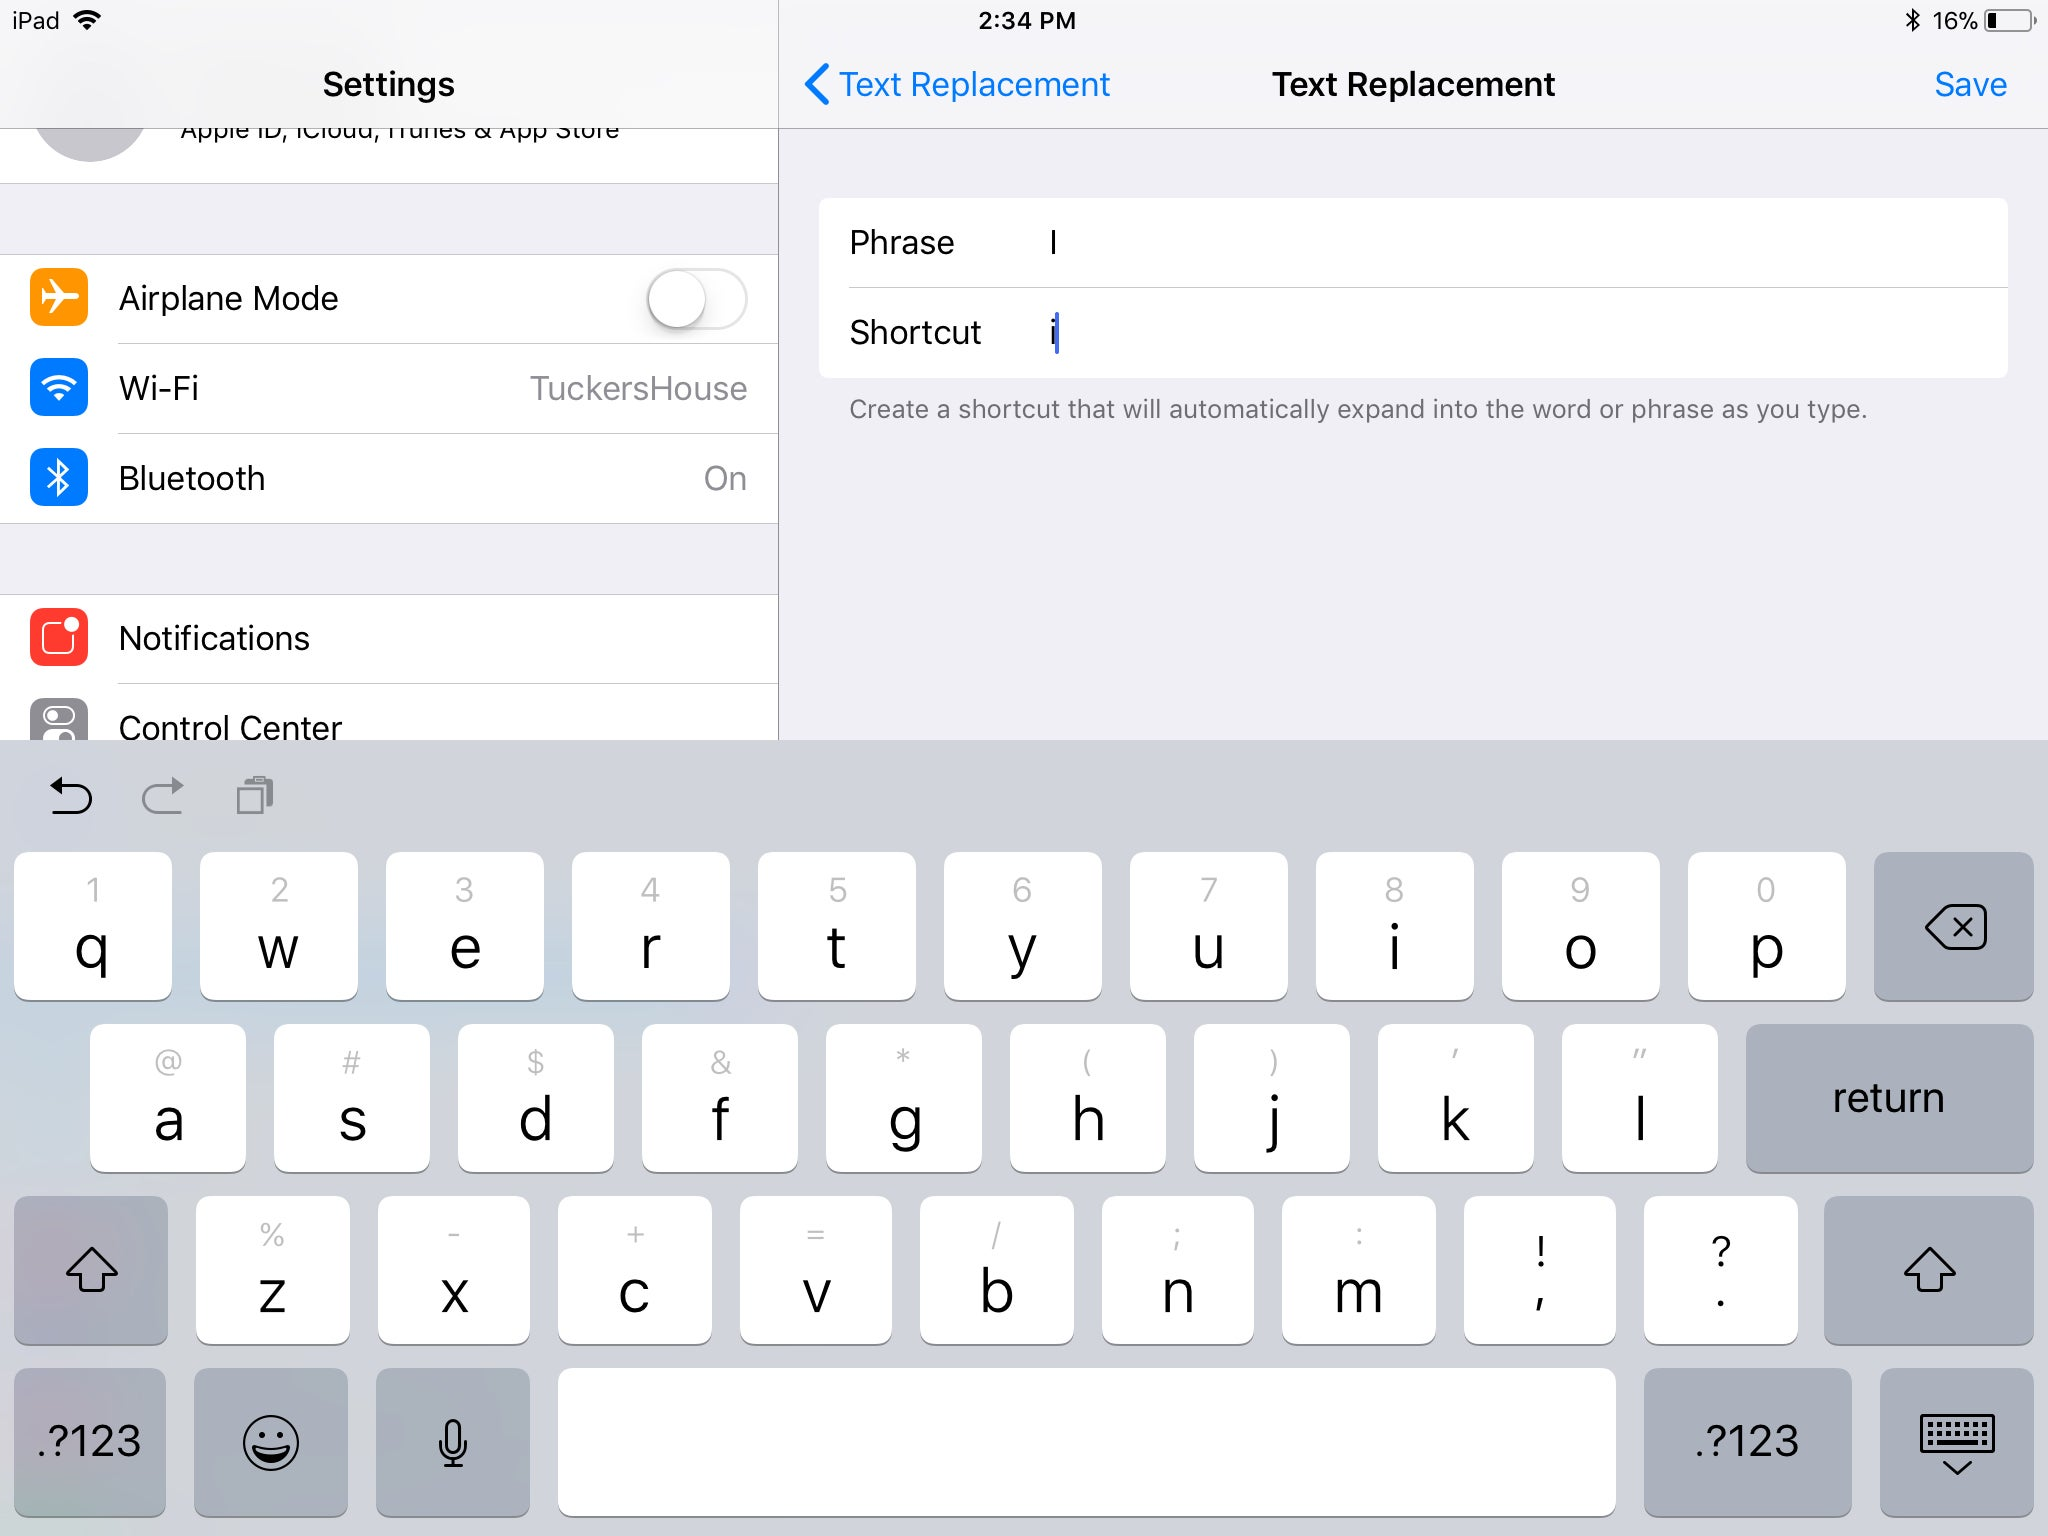 Apple iOS keyboard glitch won't let users type letter 'I'